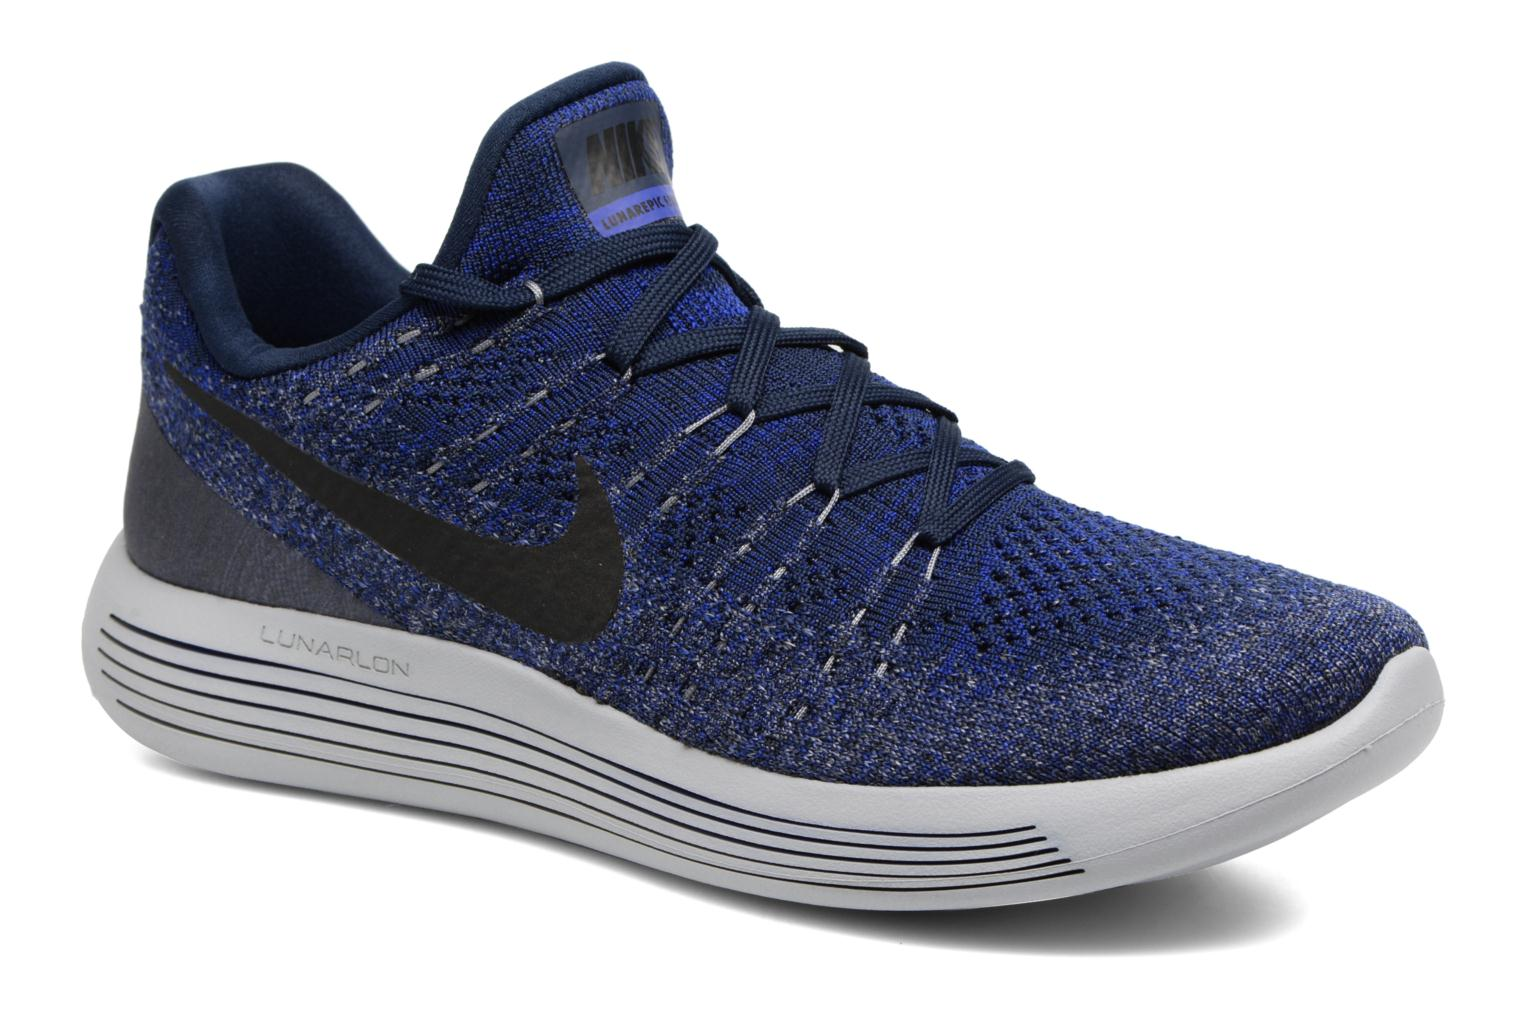 Nike Lunarepic Low Flyknit 2 College Navy/Black-Concord-Cool Grey